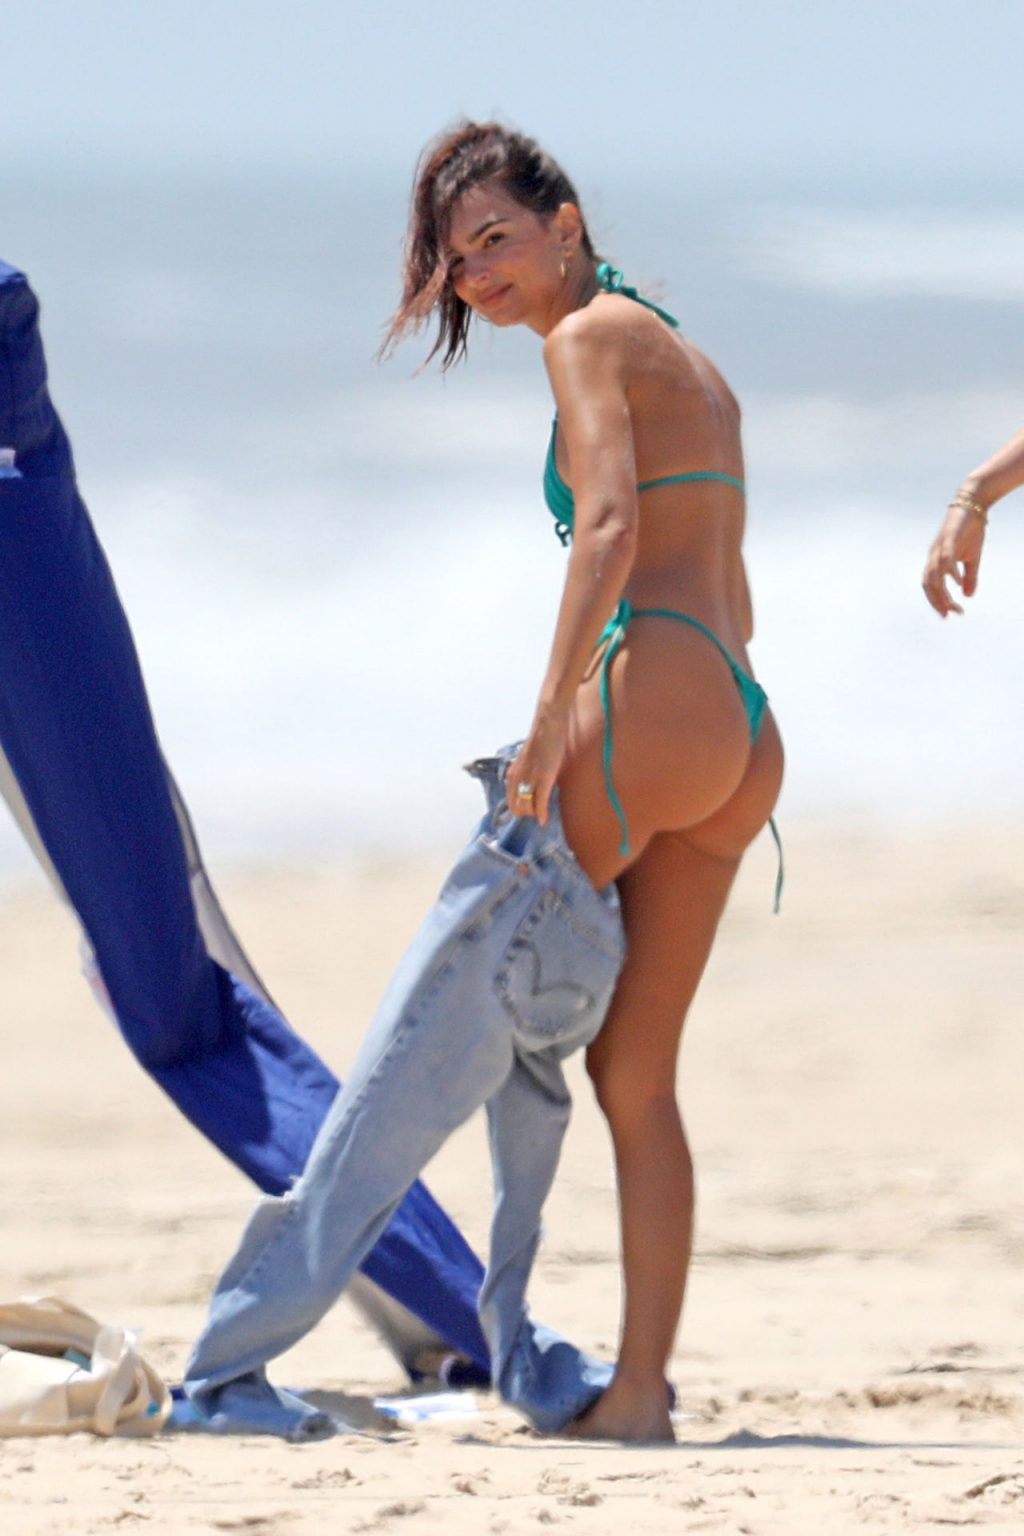 Emily Ratajkowski Rides Her Bike to the Beach in The Hamptons (38 Photos)